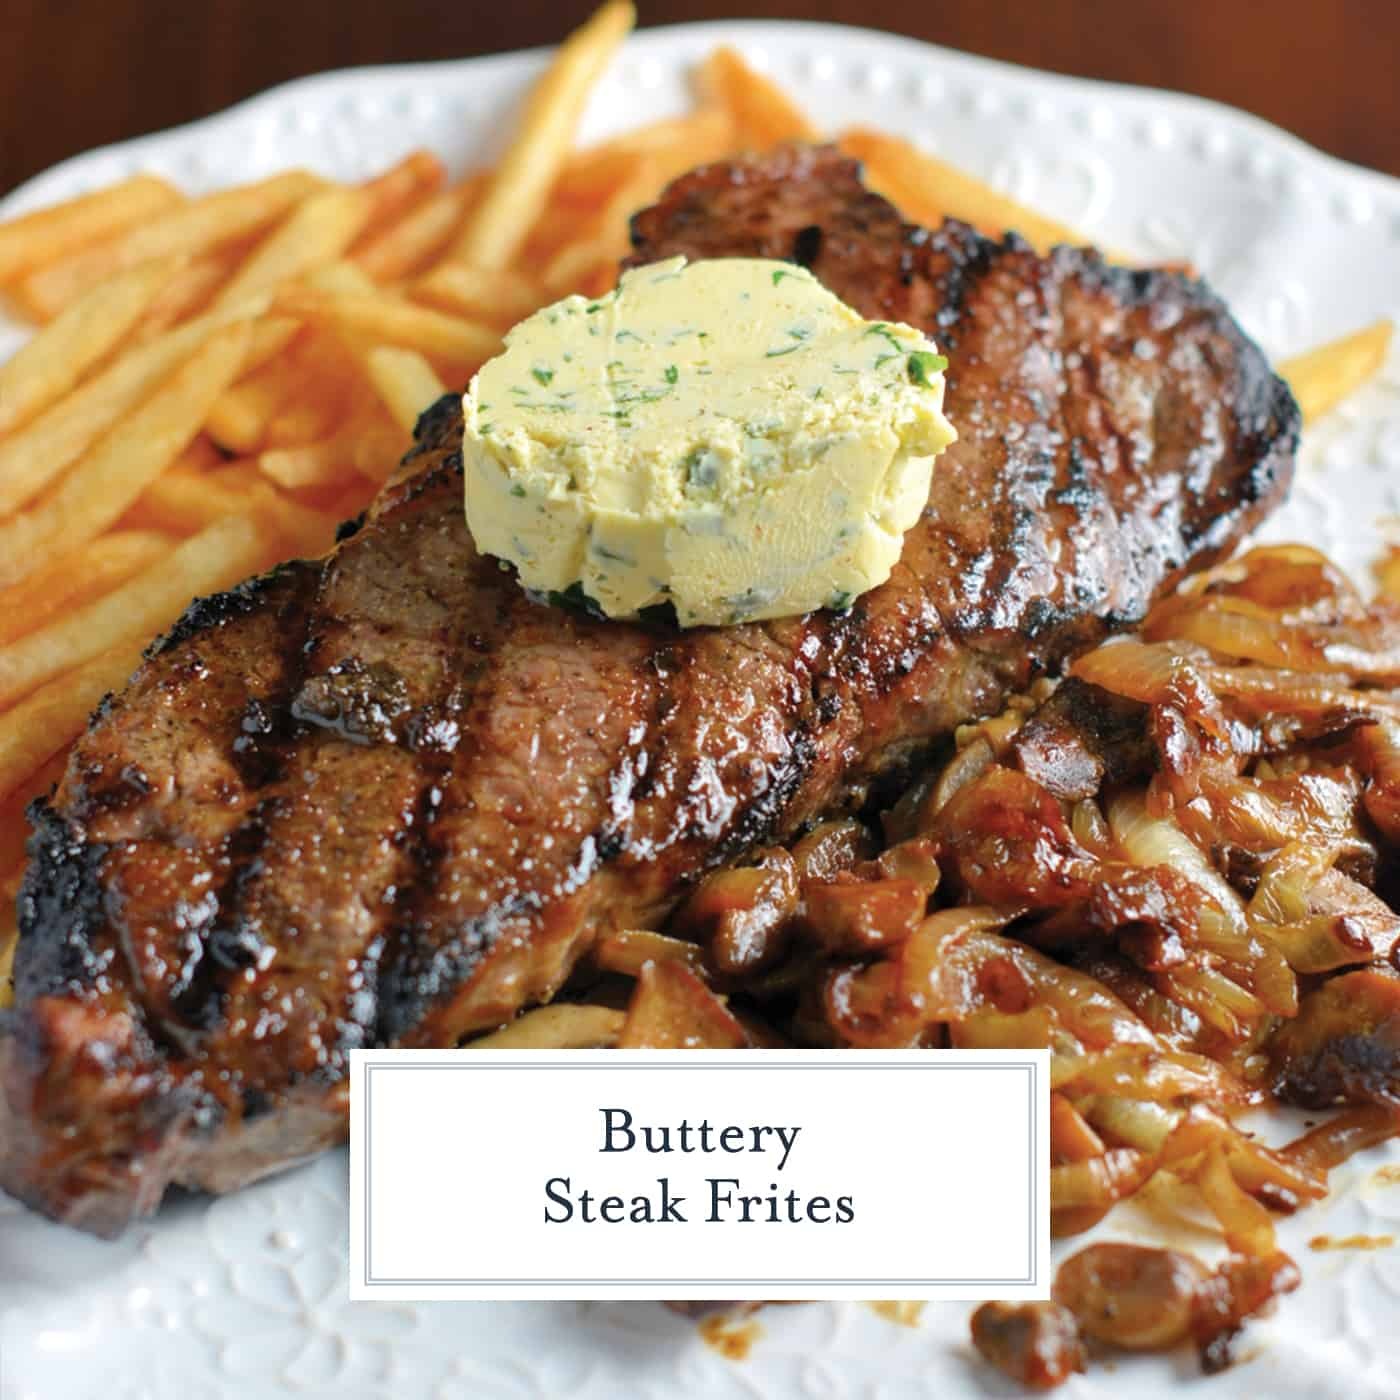 Steak Frites is the classic restaurant dish you can now make at home! Crispy french fries soak up a juicy steak topped with maitre d'hotel butter. #steakfrites #frenchrecipes www.savoryexperiments.com